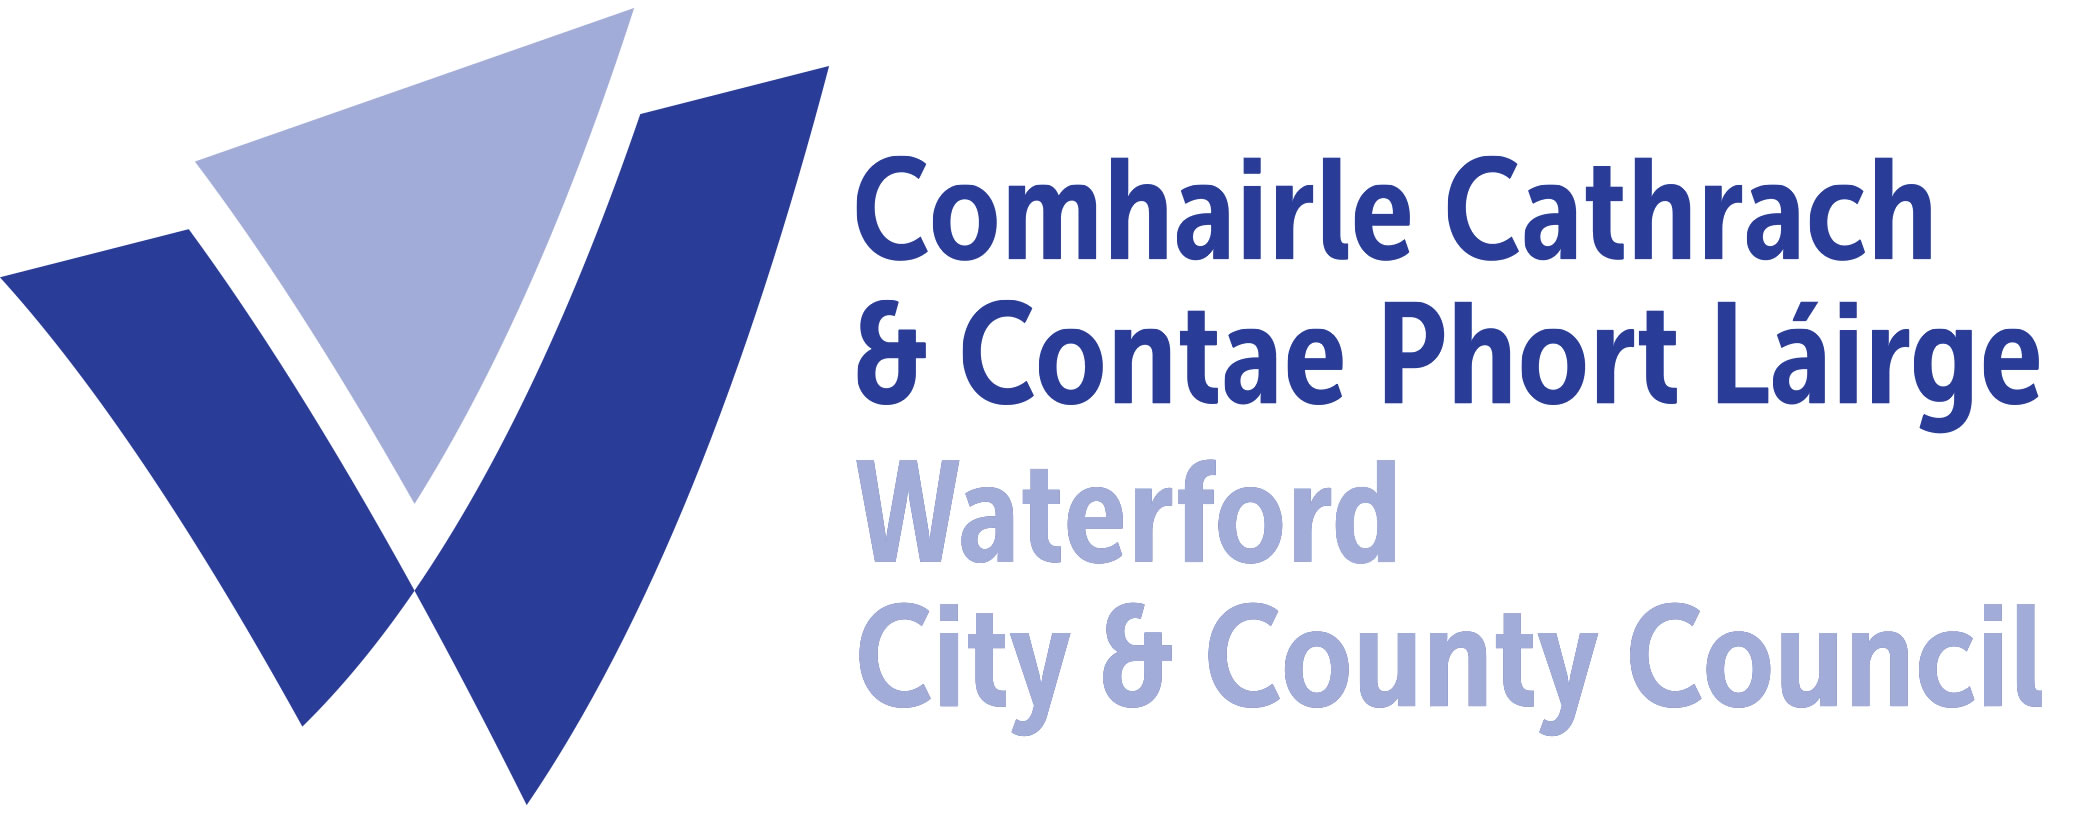 Waterford City  Council.jpg